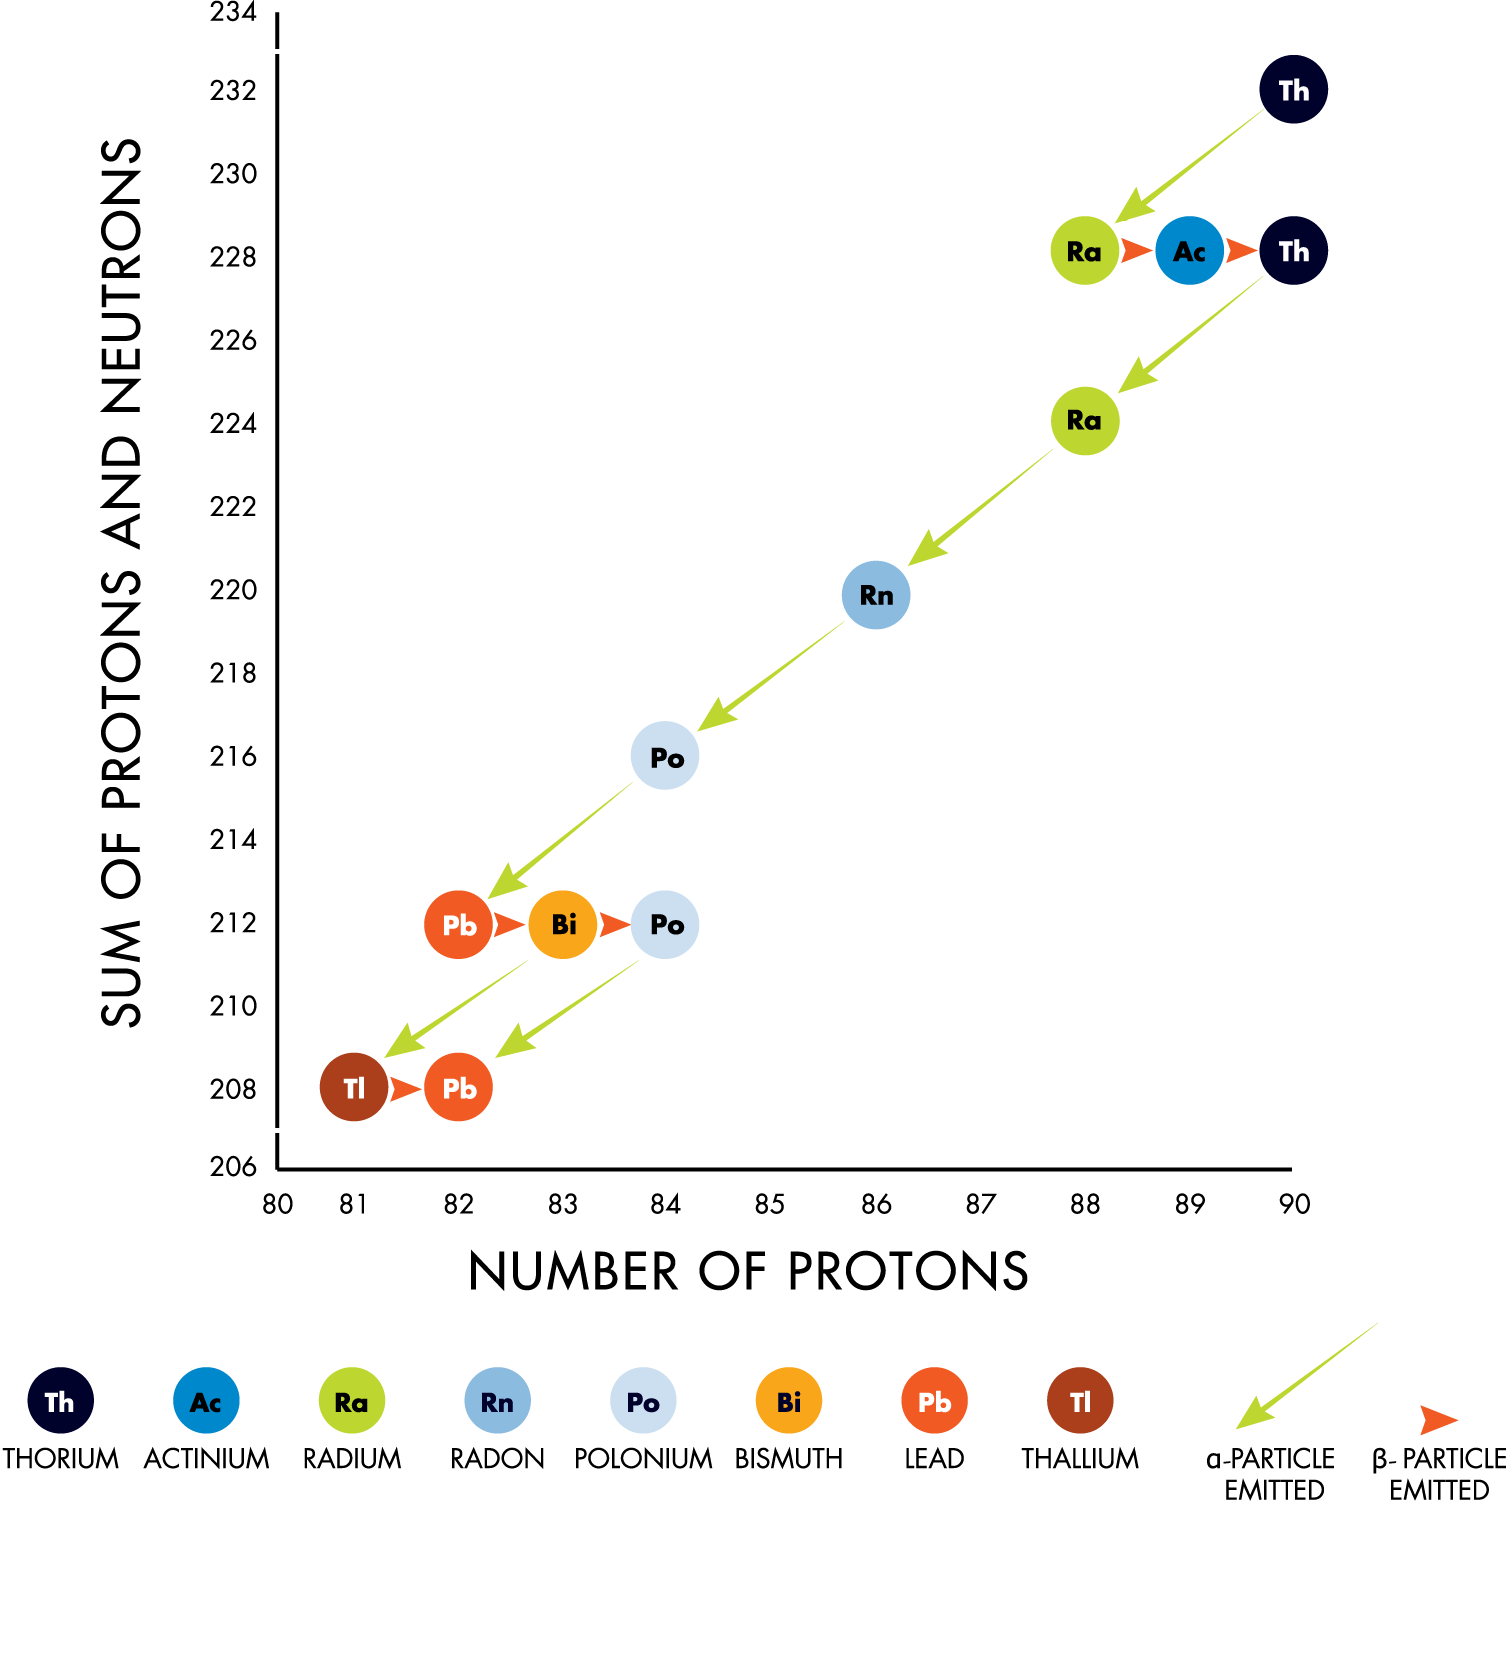 thorium decay chain